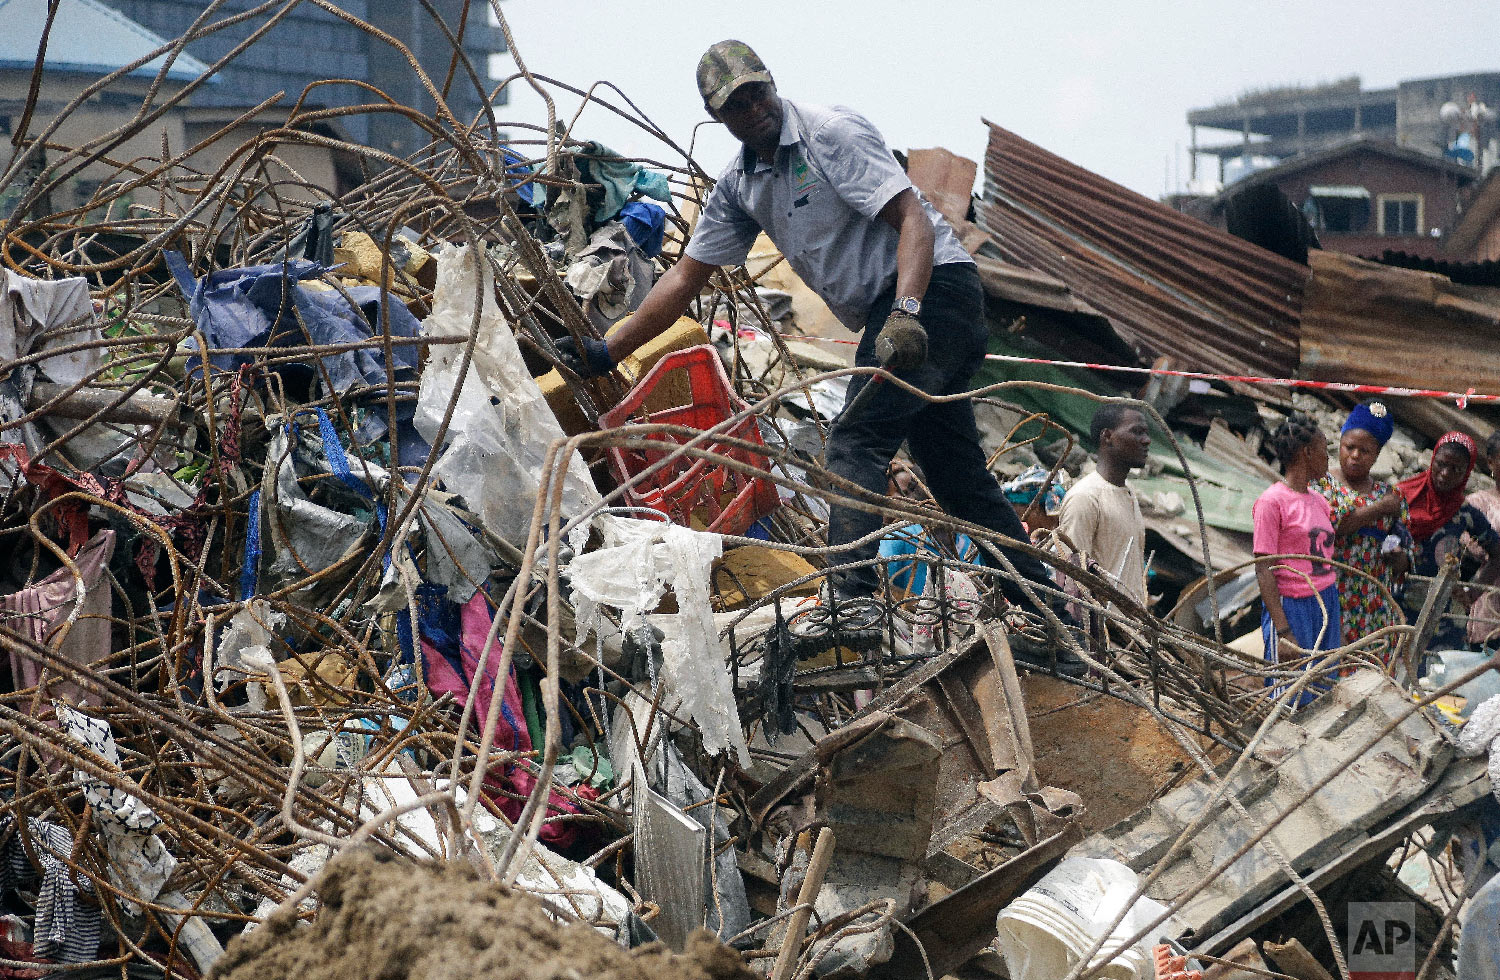 Government officials from Standard Organisation of Nigeria examine materials used in constructing the building that collapsed in Lagos, Nigeria, Thursday, March 14, 2019. (AP Photo/Sunday Alamba)